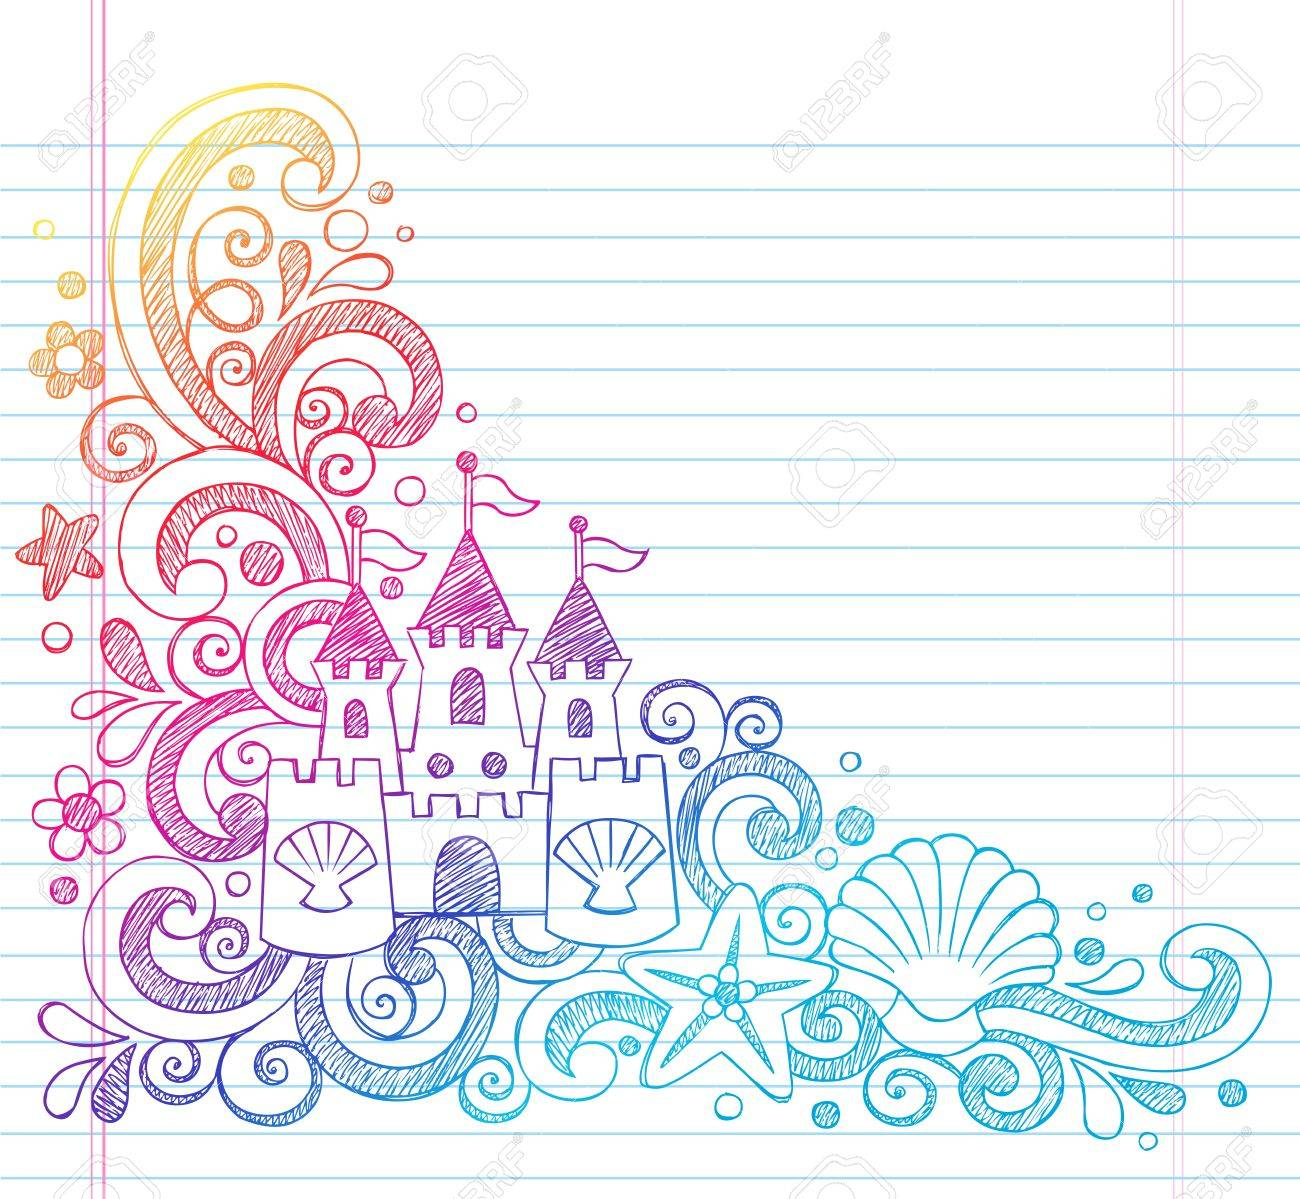 Sandcastle Tropical Beach Summer Vacation Sketchy Notebook Doodles- Hand Drawn  Illustration on Lined Sketchbook Paper Background Stock Vector - 19475578